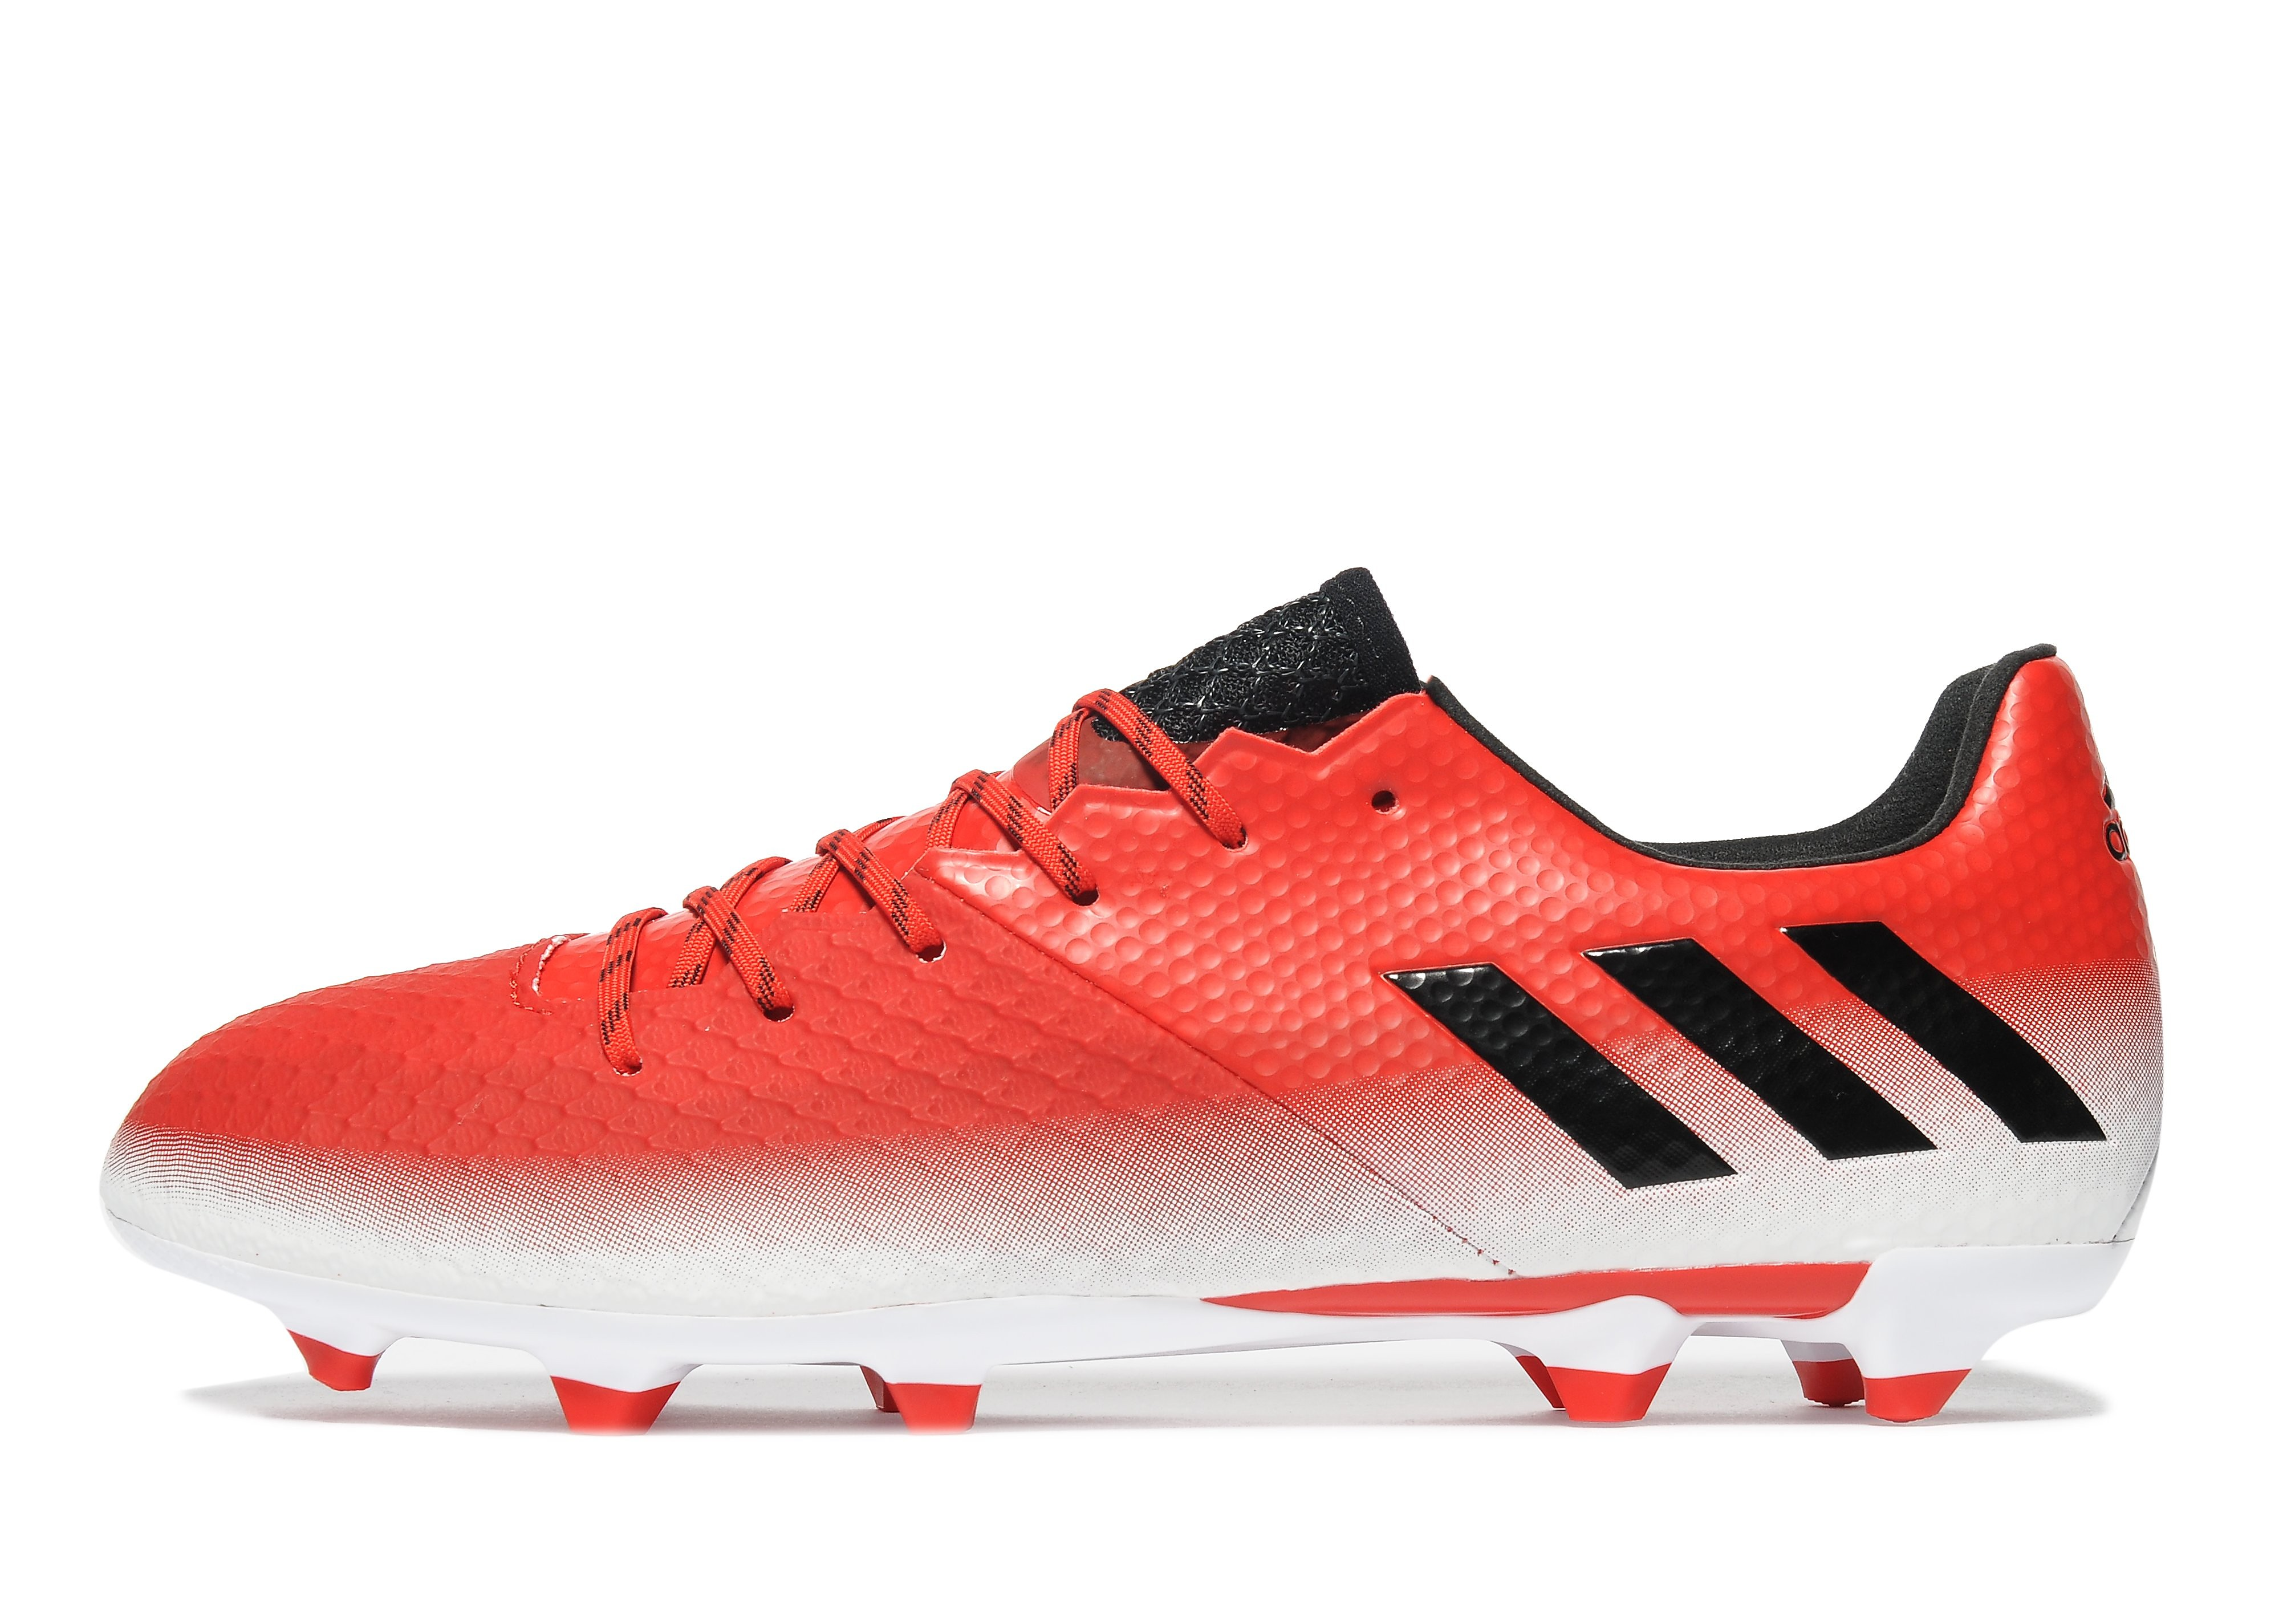 adidas Red Limit Messi 16.2 FG